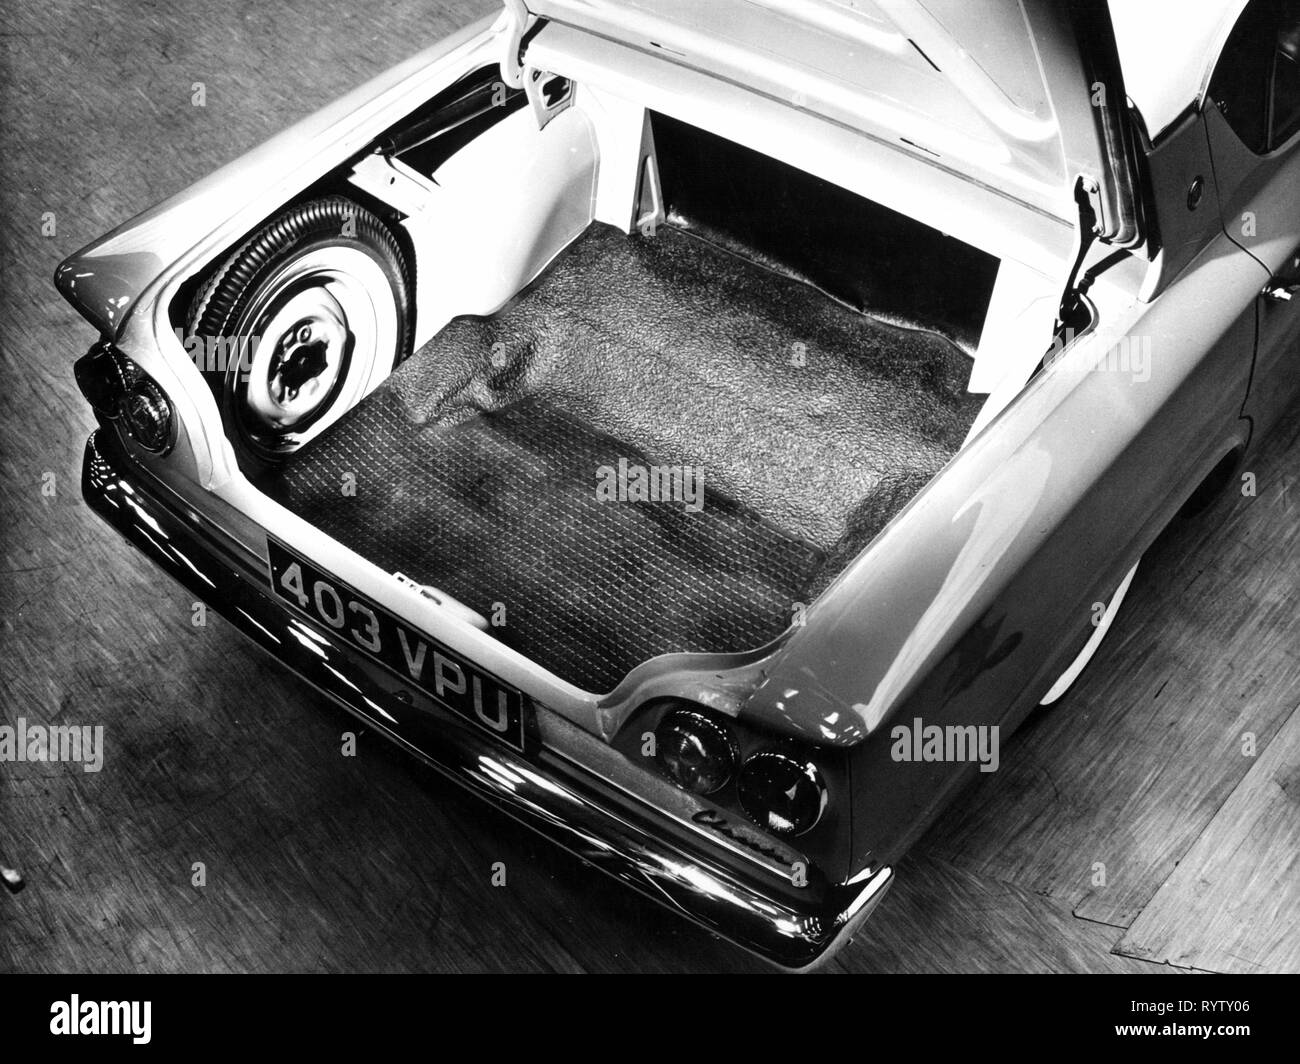 transport / transportation, cars, vehicle variants, Ford Consul Classic, detail, boot, interior view, Ford of Britain, 1961, Ford Consul 315, motor car, auto, automobile, passenger car, motorcar, motorcars, autos, automobiles, passenger cars, vehicle, vehicles, limousine, middle class, spare wheel, spare wheels, spare tyre, spare tire, spare tyres, spare tires, inflatable spare tyre/tire, tyre, tire, tyres, tires, opened, open, Great Britain, United Kingdom, 1960s, 60s, 20th century, transport, transportation, cars, car, detail, details, boot, tr, Additional-Rights-Clearance-Info-Not-Available - Stock Image